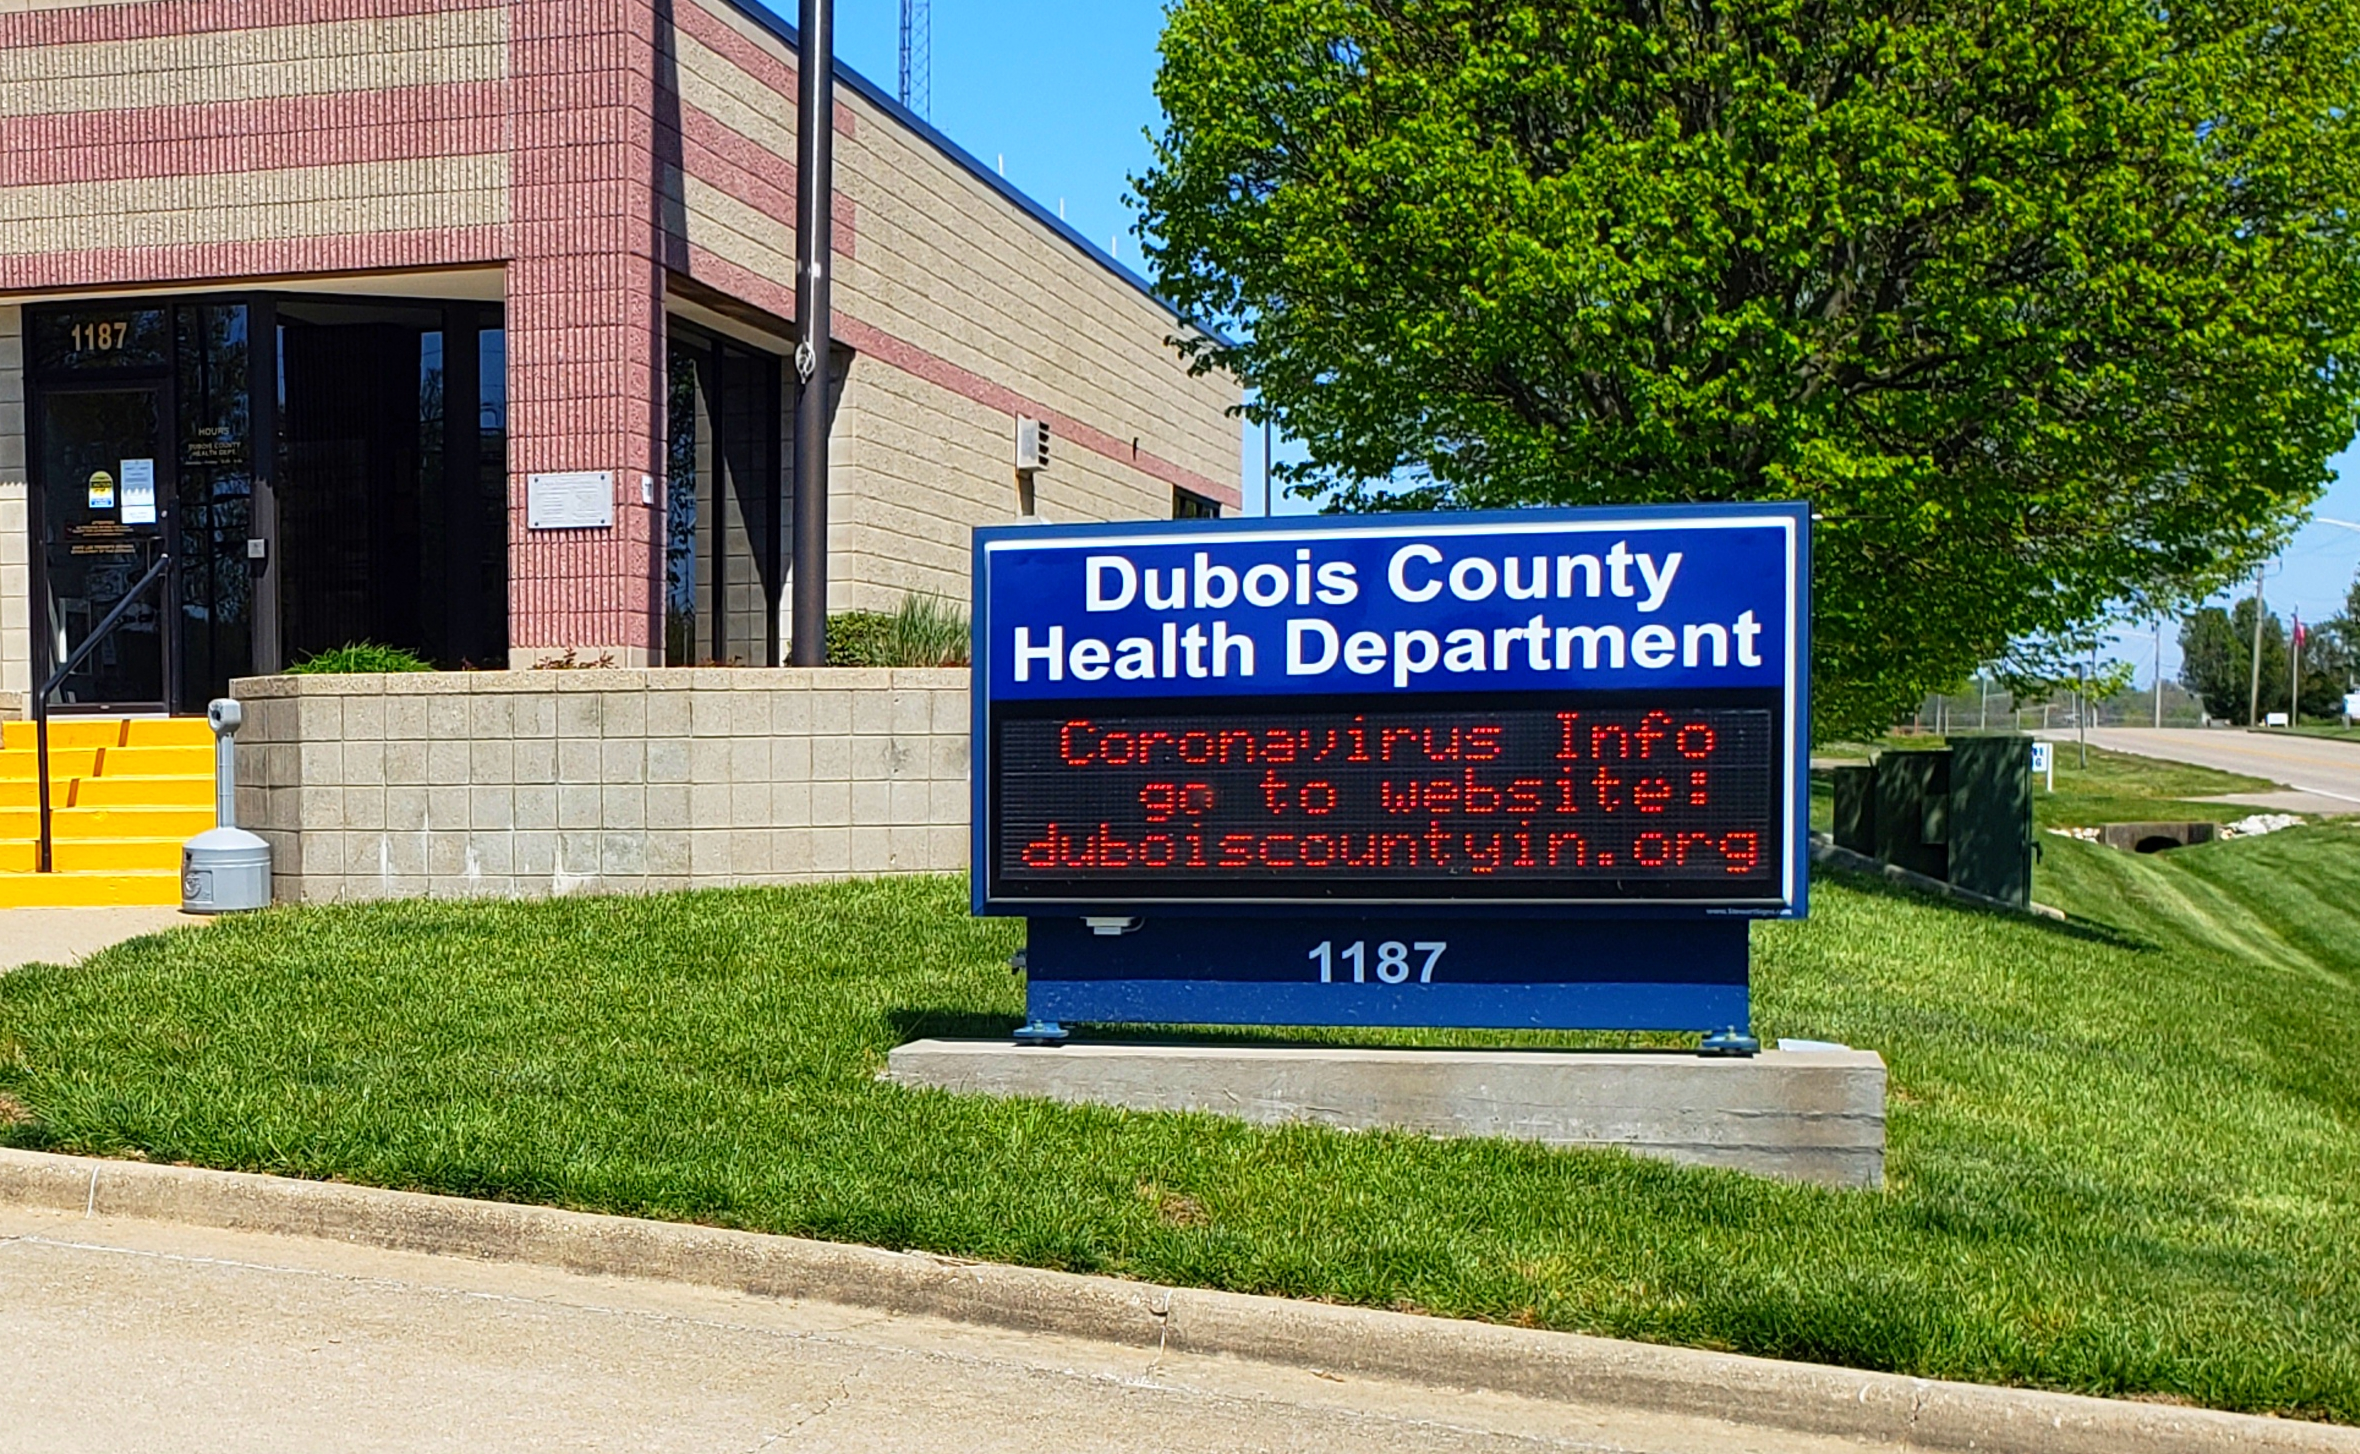 69 New COVID-19 Cases, 1 Death Reported This Week in Dubois County